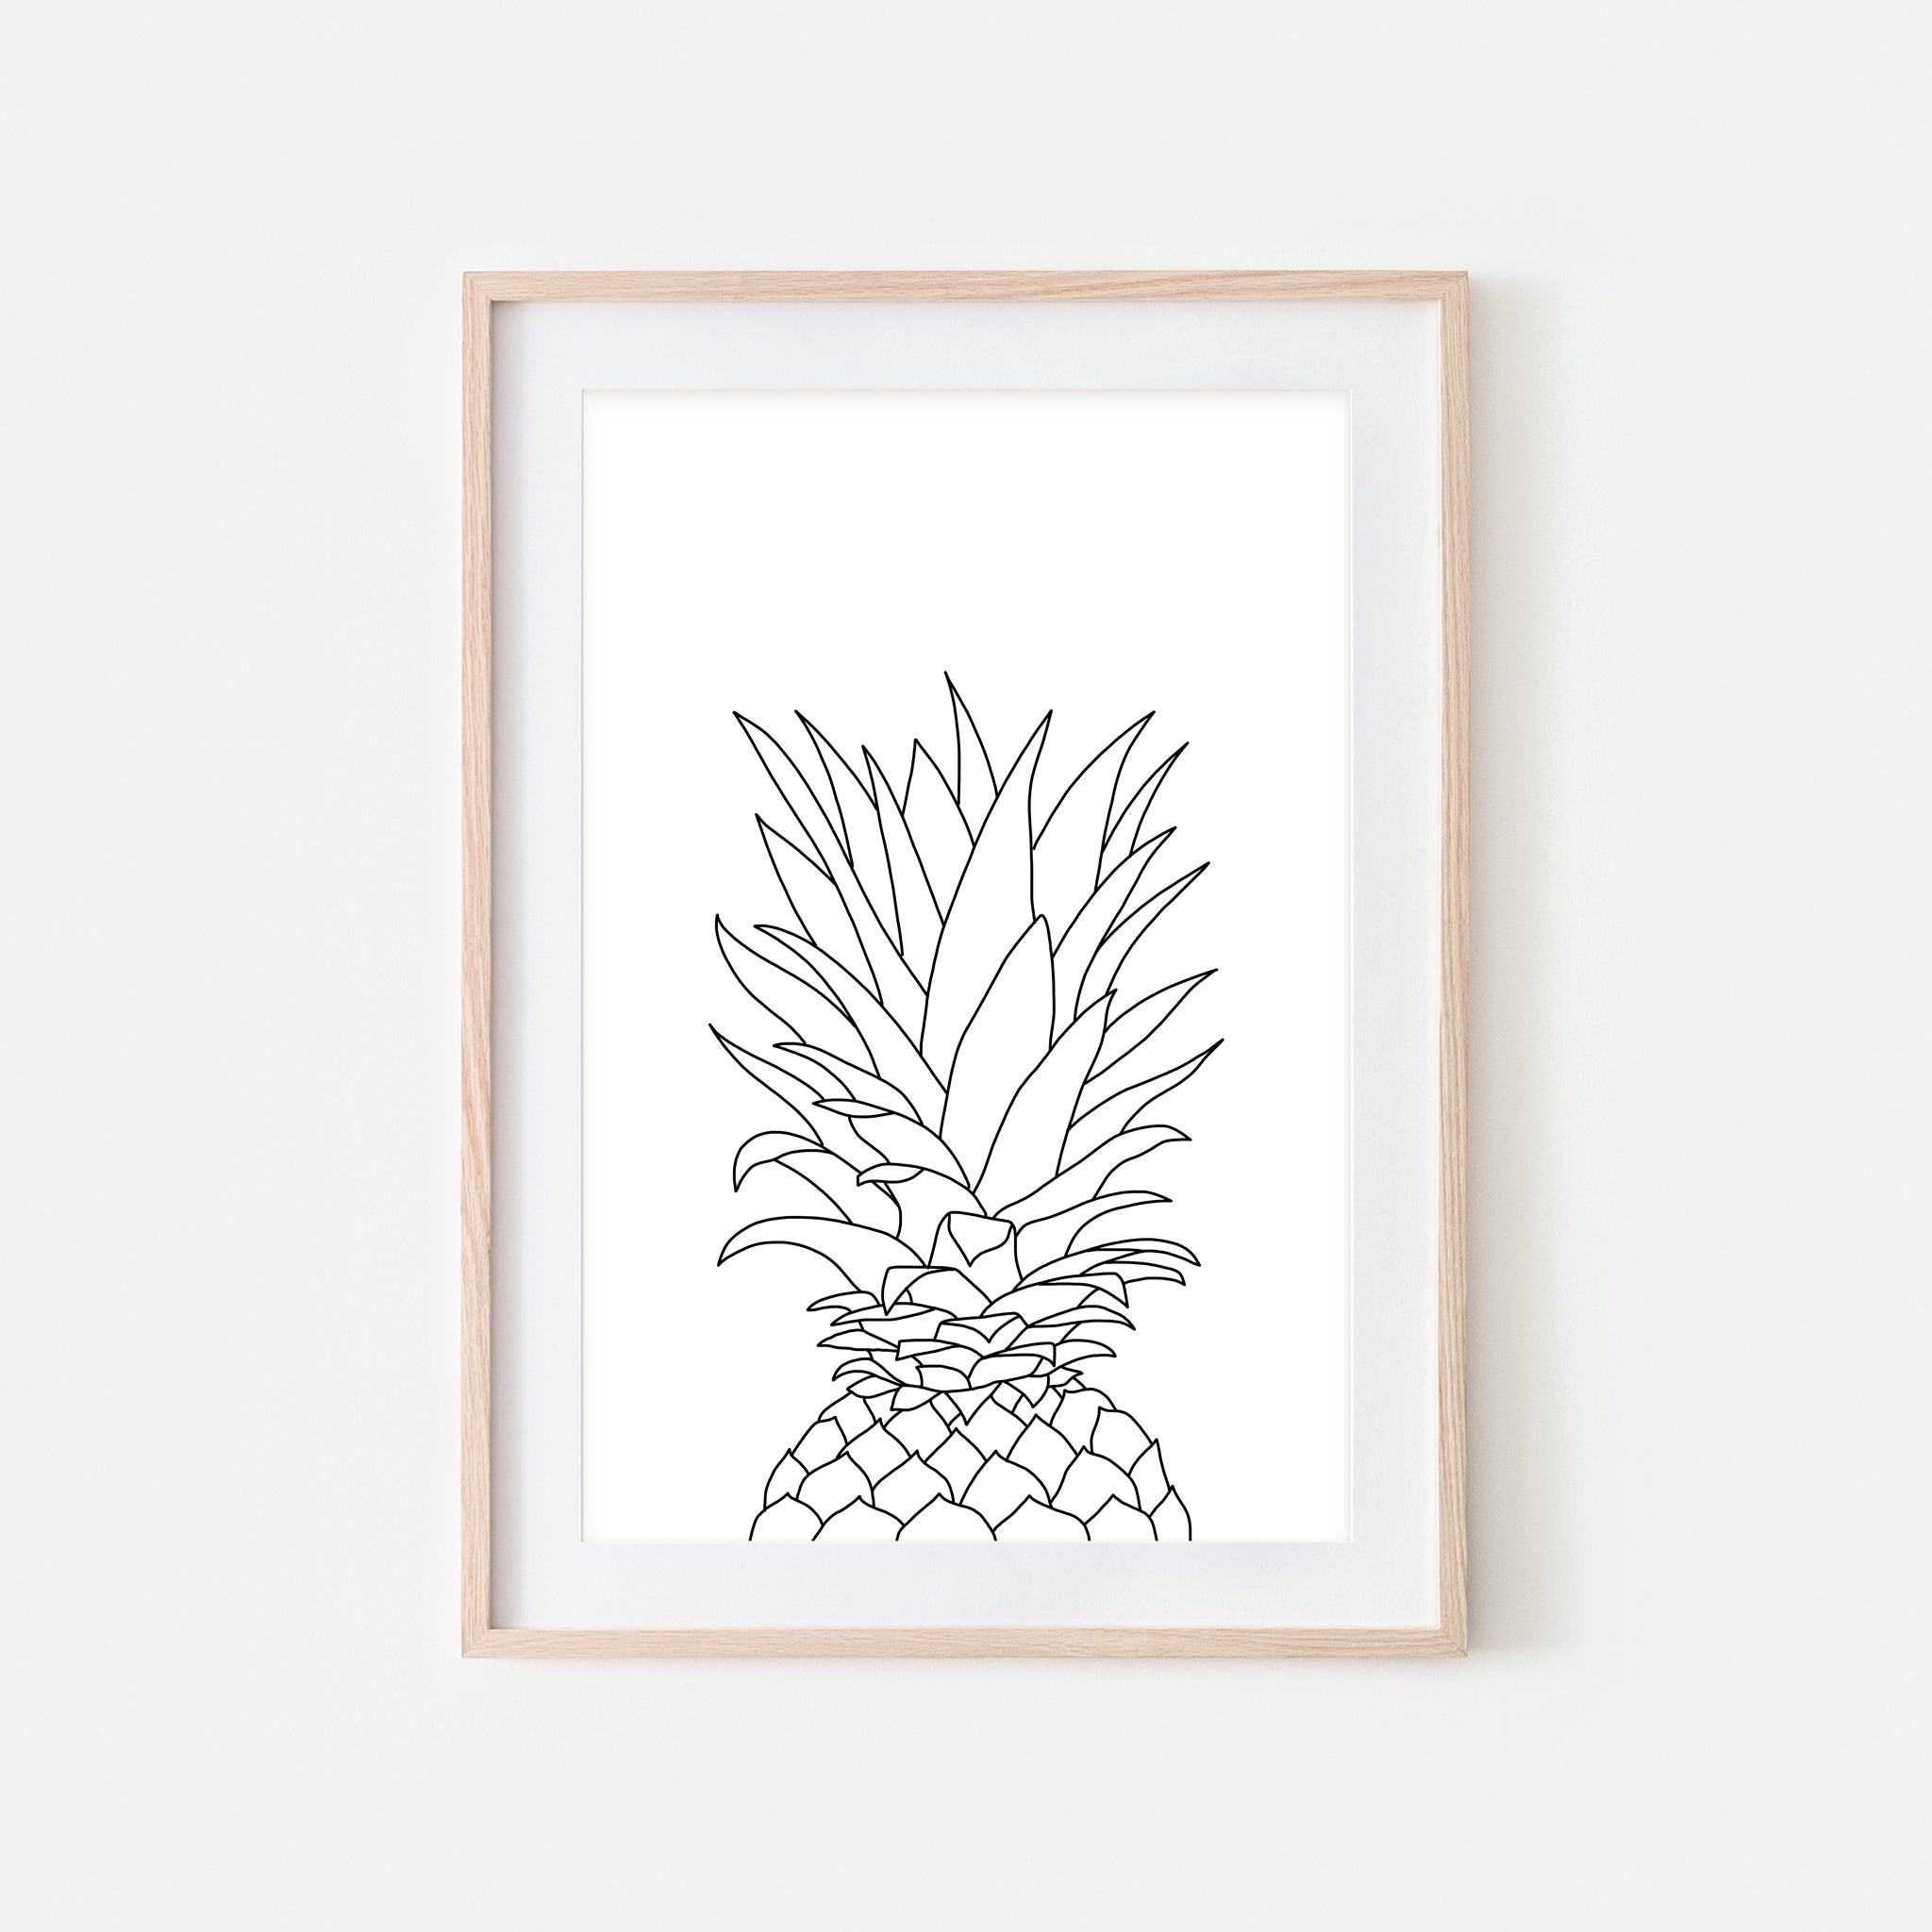 Pineapple No. 1 Line Art - Minimalist Fruit Drawing - Tropical Beach Kitchen Wall Decor - Black and White Print, Poster or Printable Download